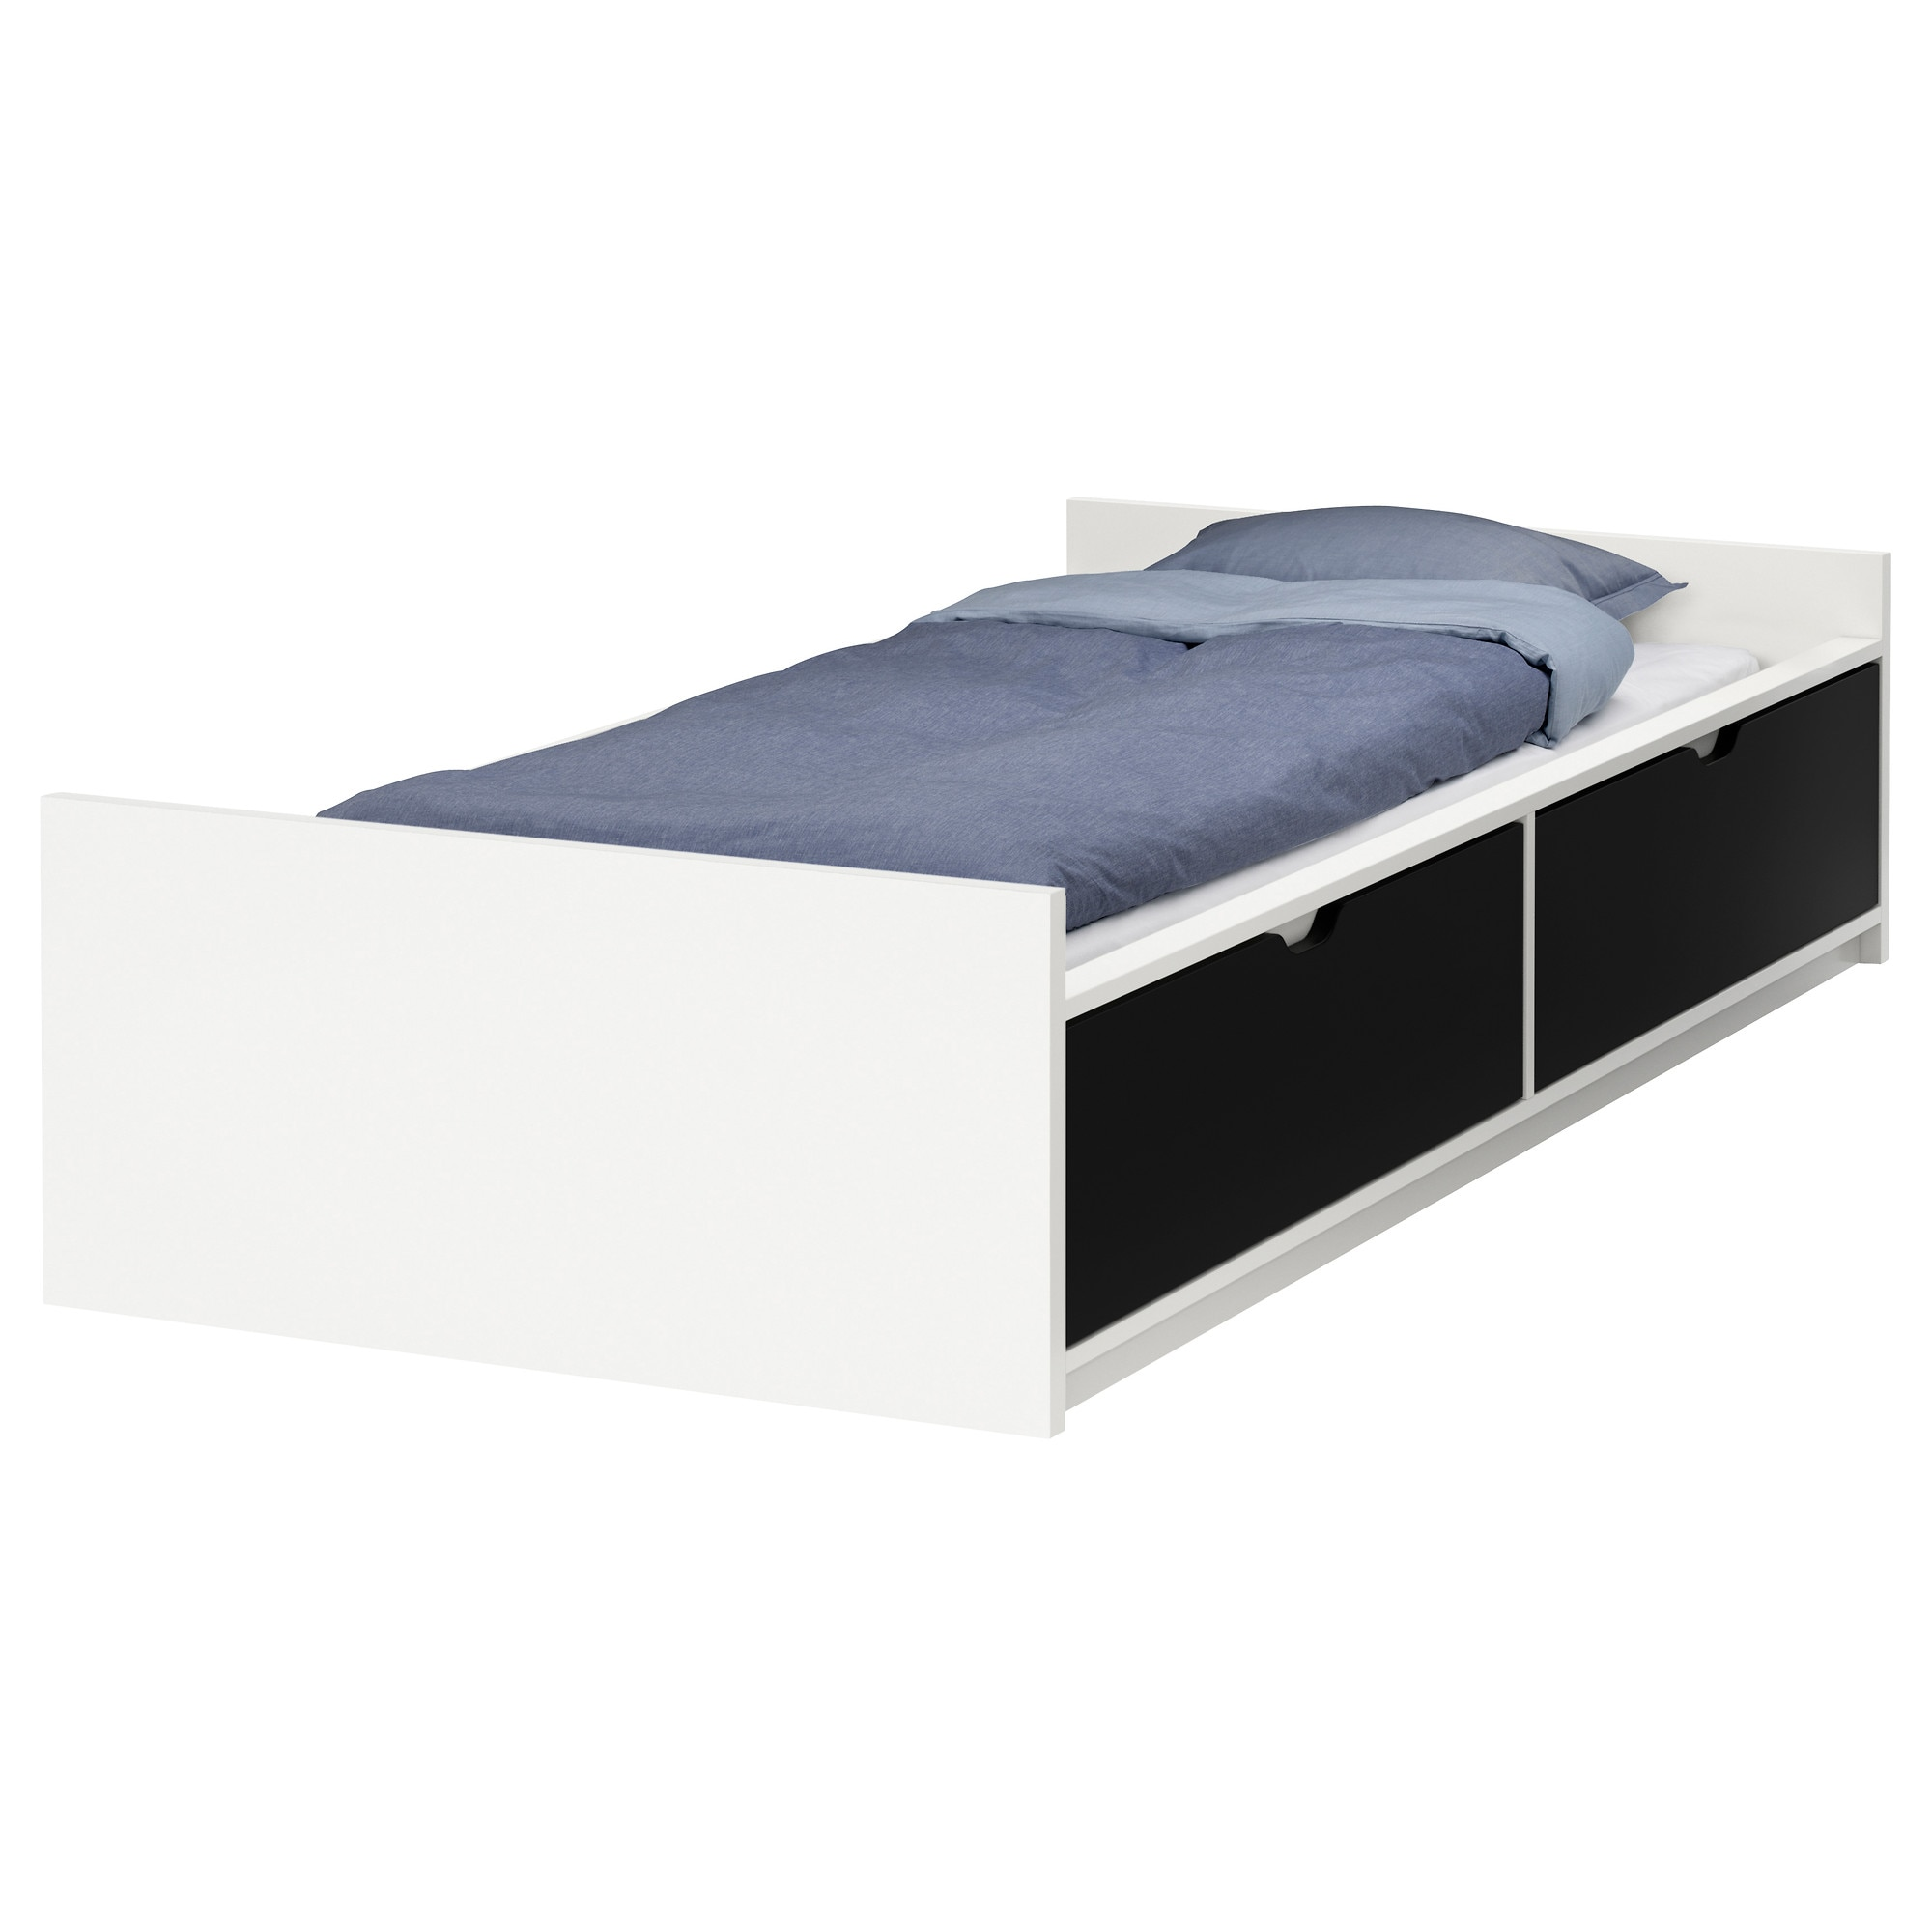 Bed frames with storage drawers - Bed Frames With Storage Drawers 1